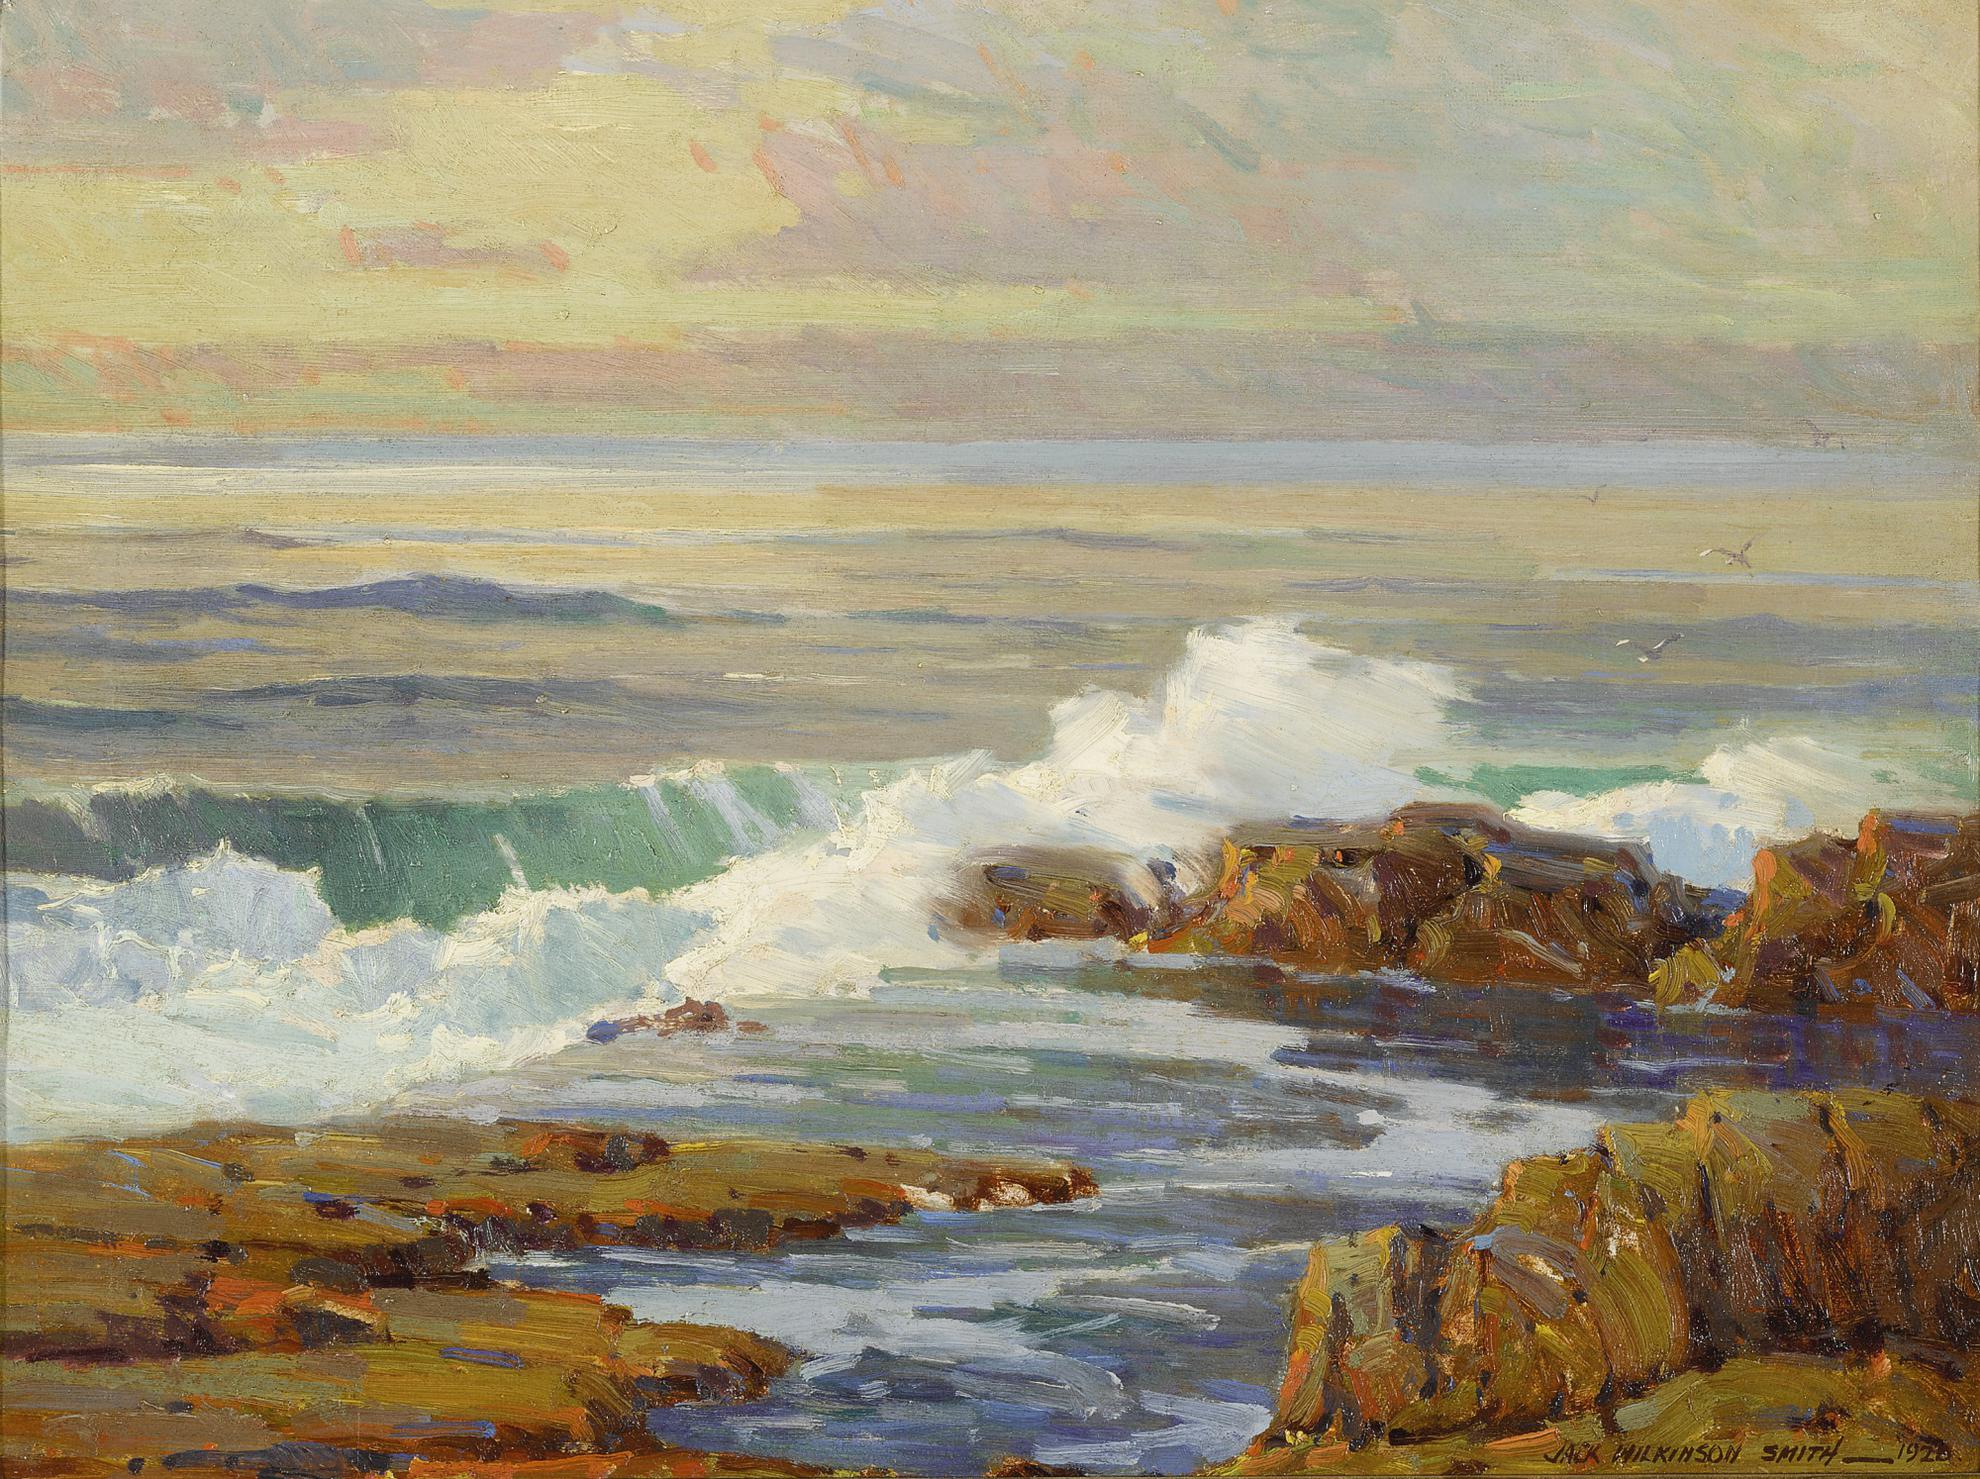 Jack Wilkinson Smith - The Drenched Rocks-1928